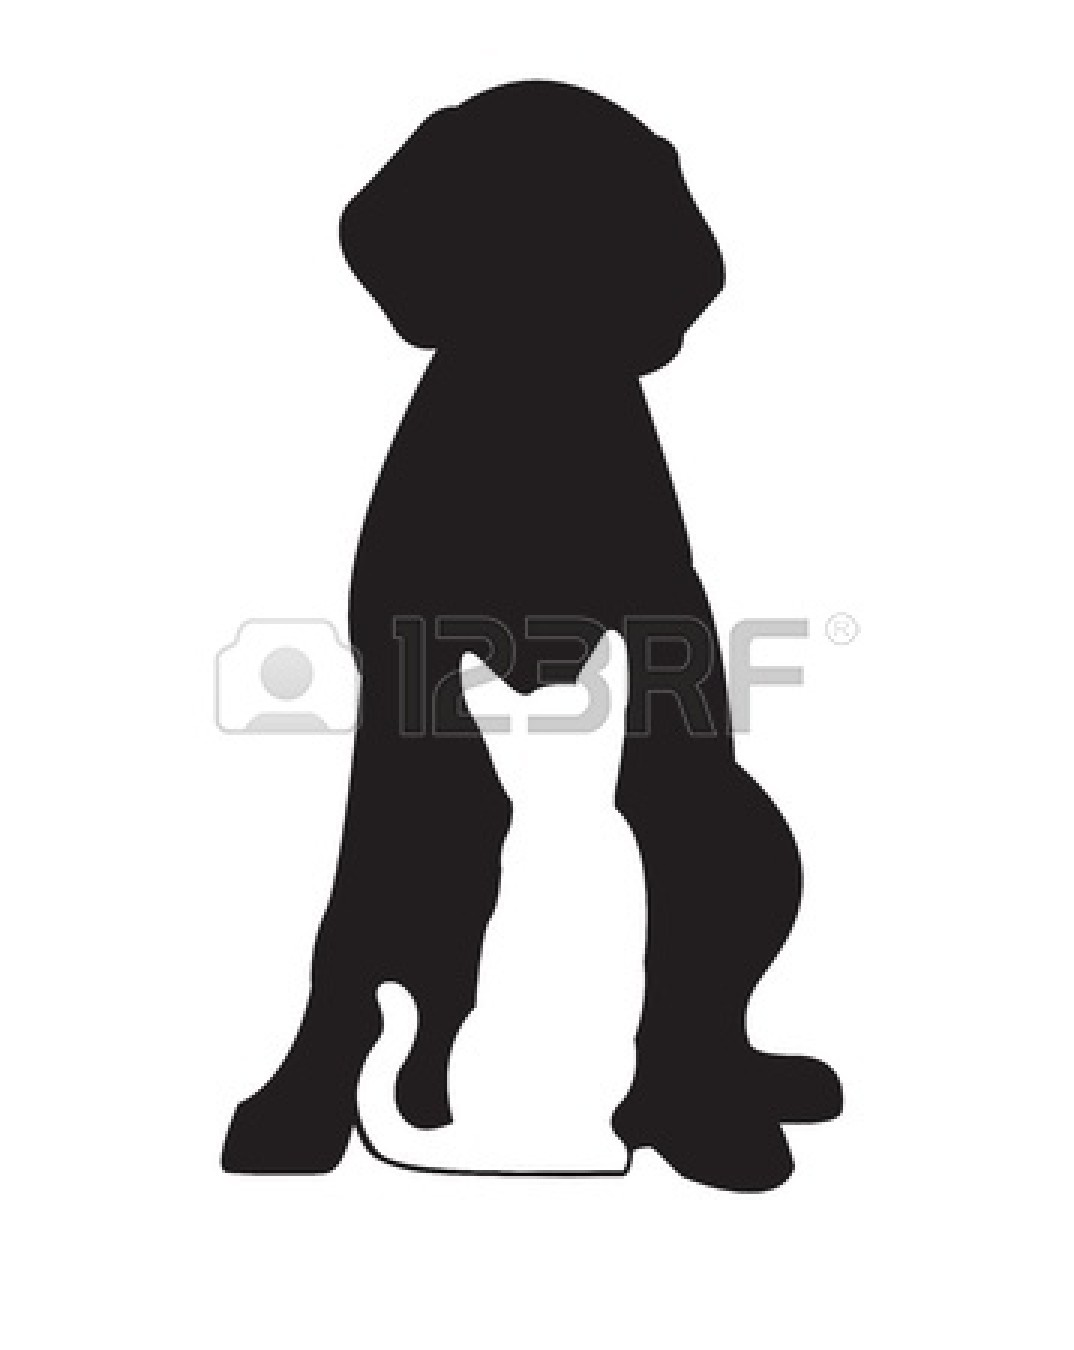 dog-and-cat-clip-art-black-and-white-13747228-silhouette-of-black-dog ...